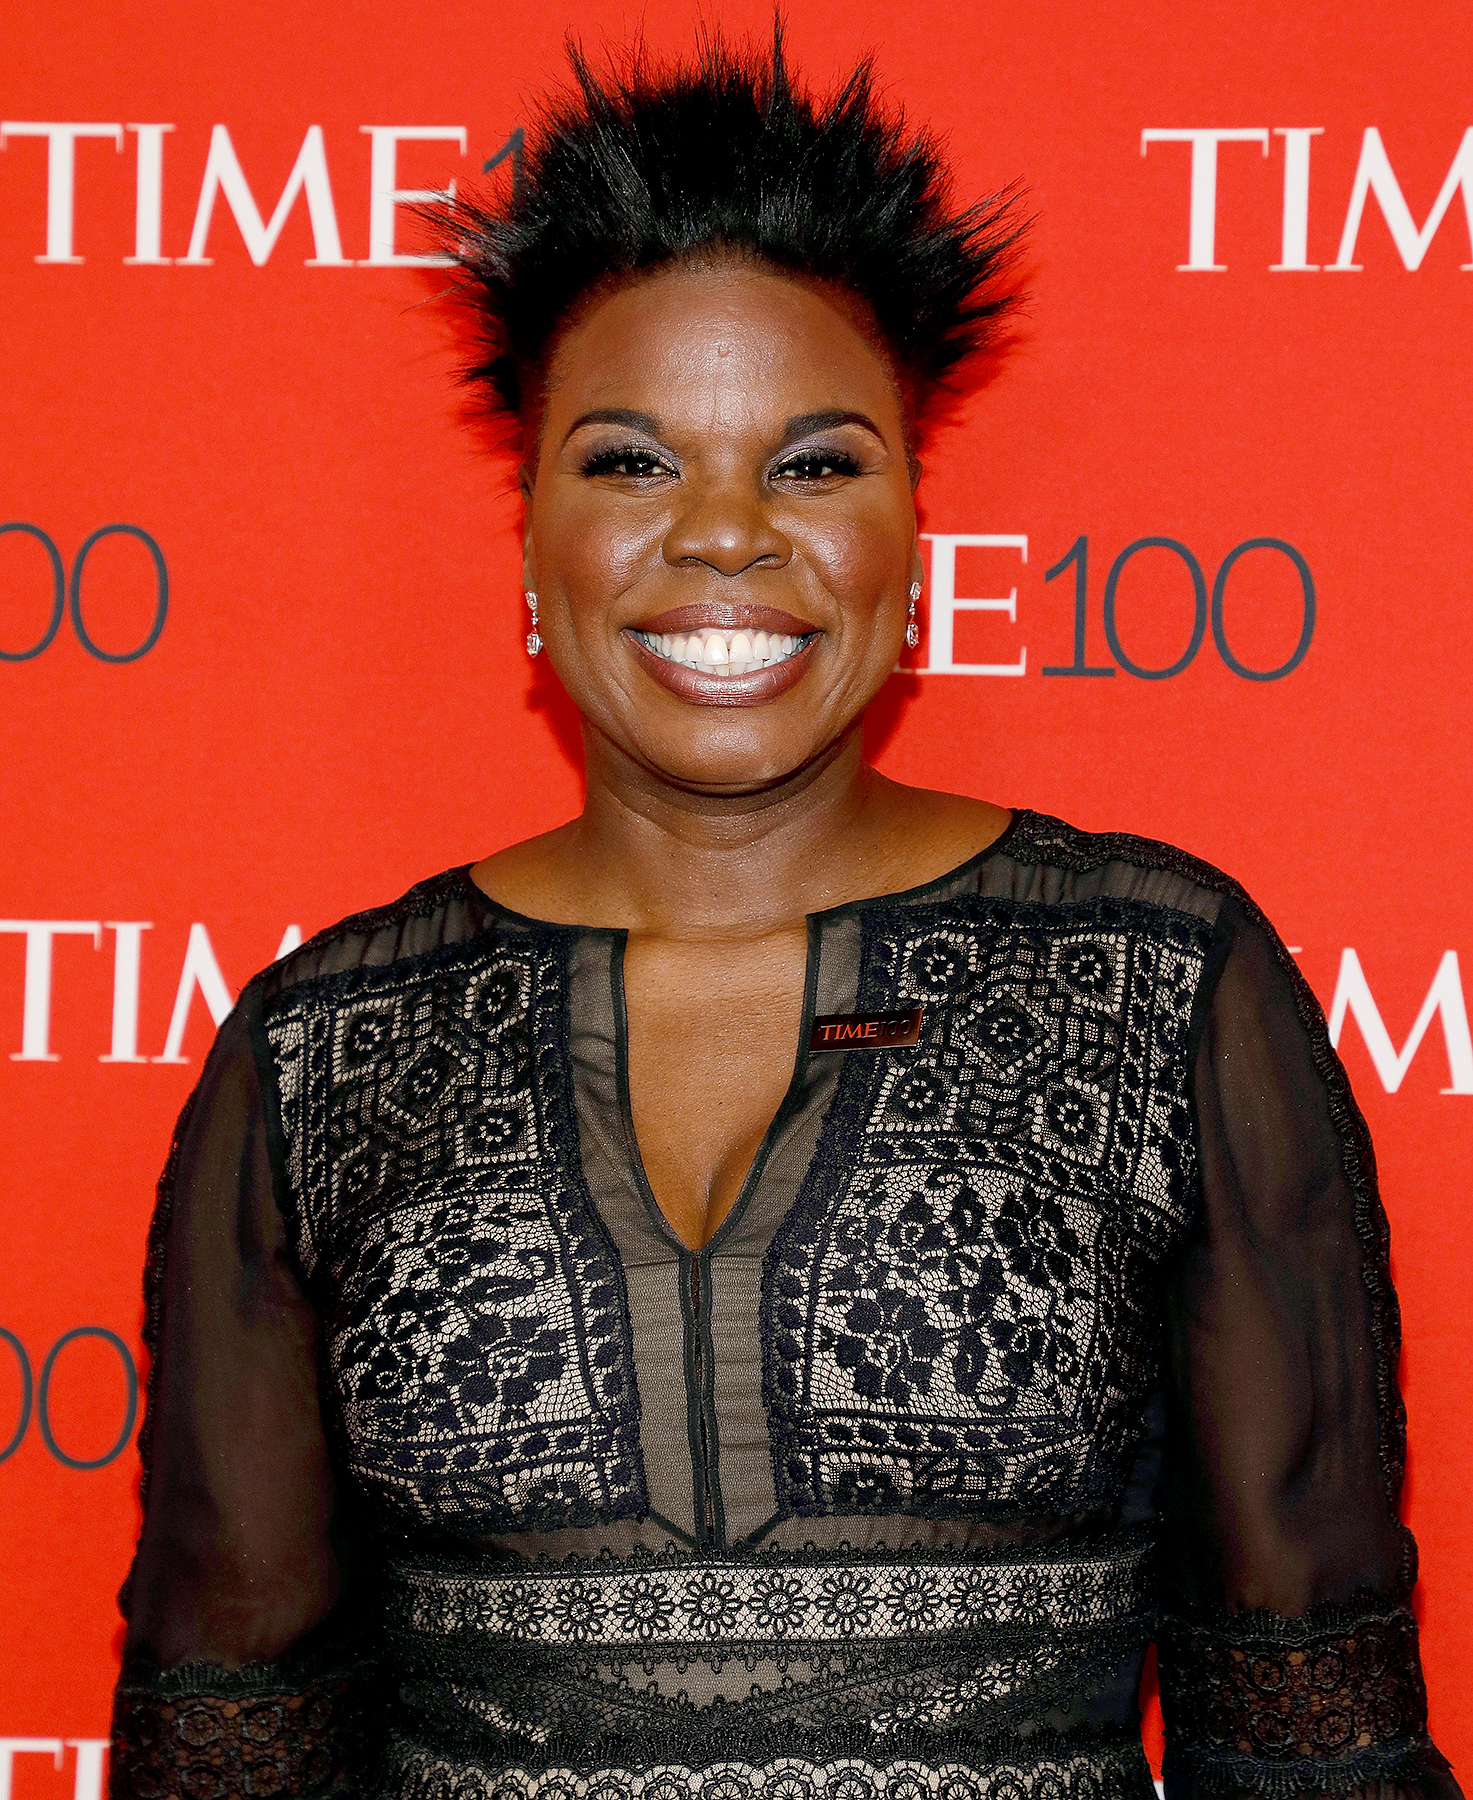 Leslie Jones attends the 2017 Time 100 Gala at Jazz at Lincoln Center on April 25, 2017 in New York City.